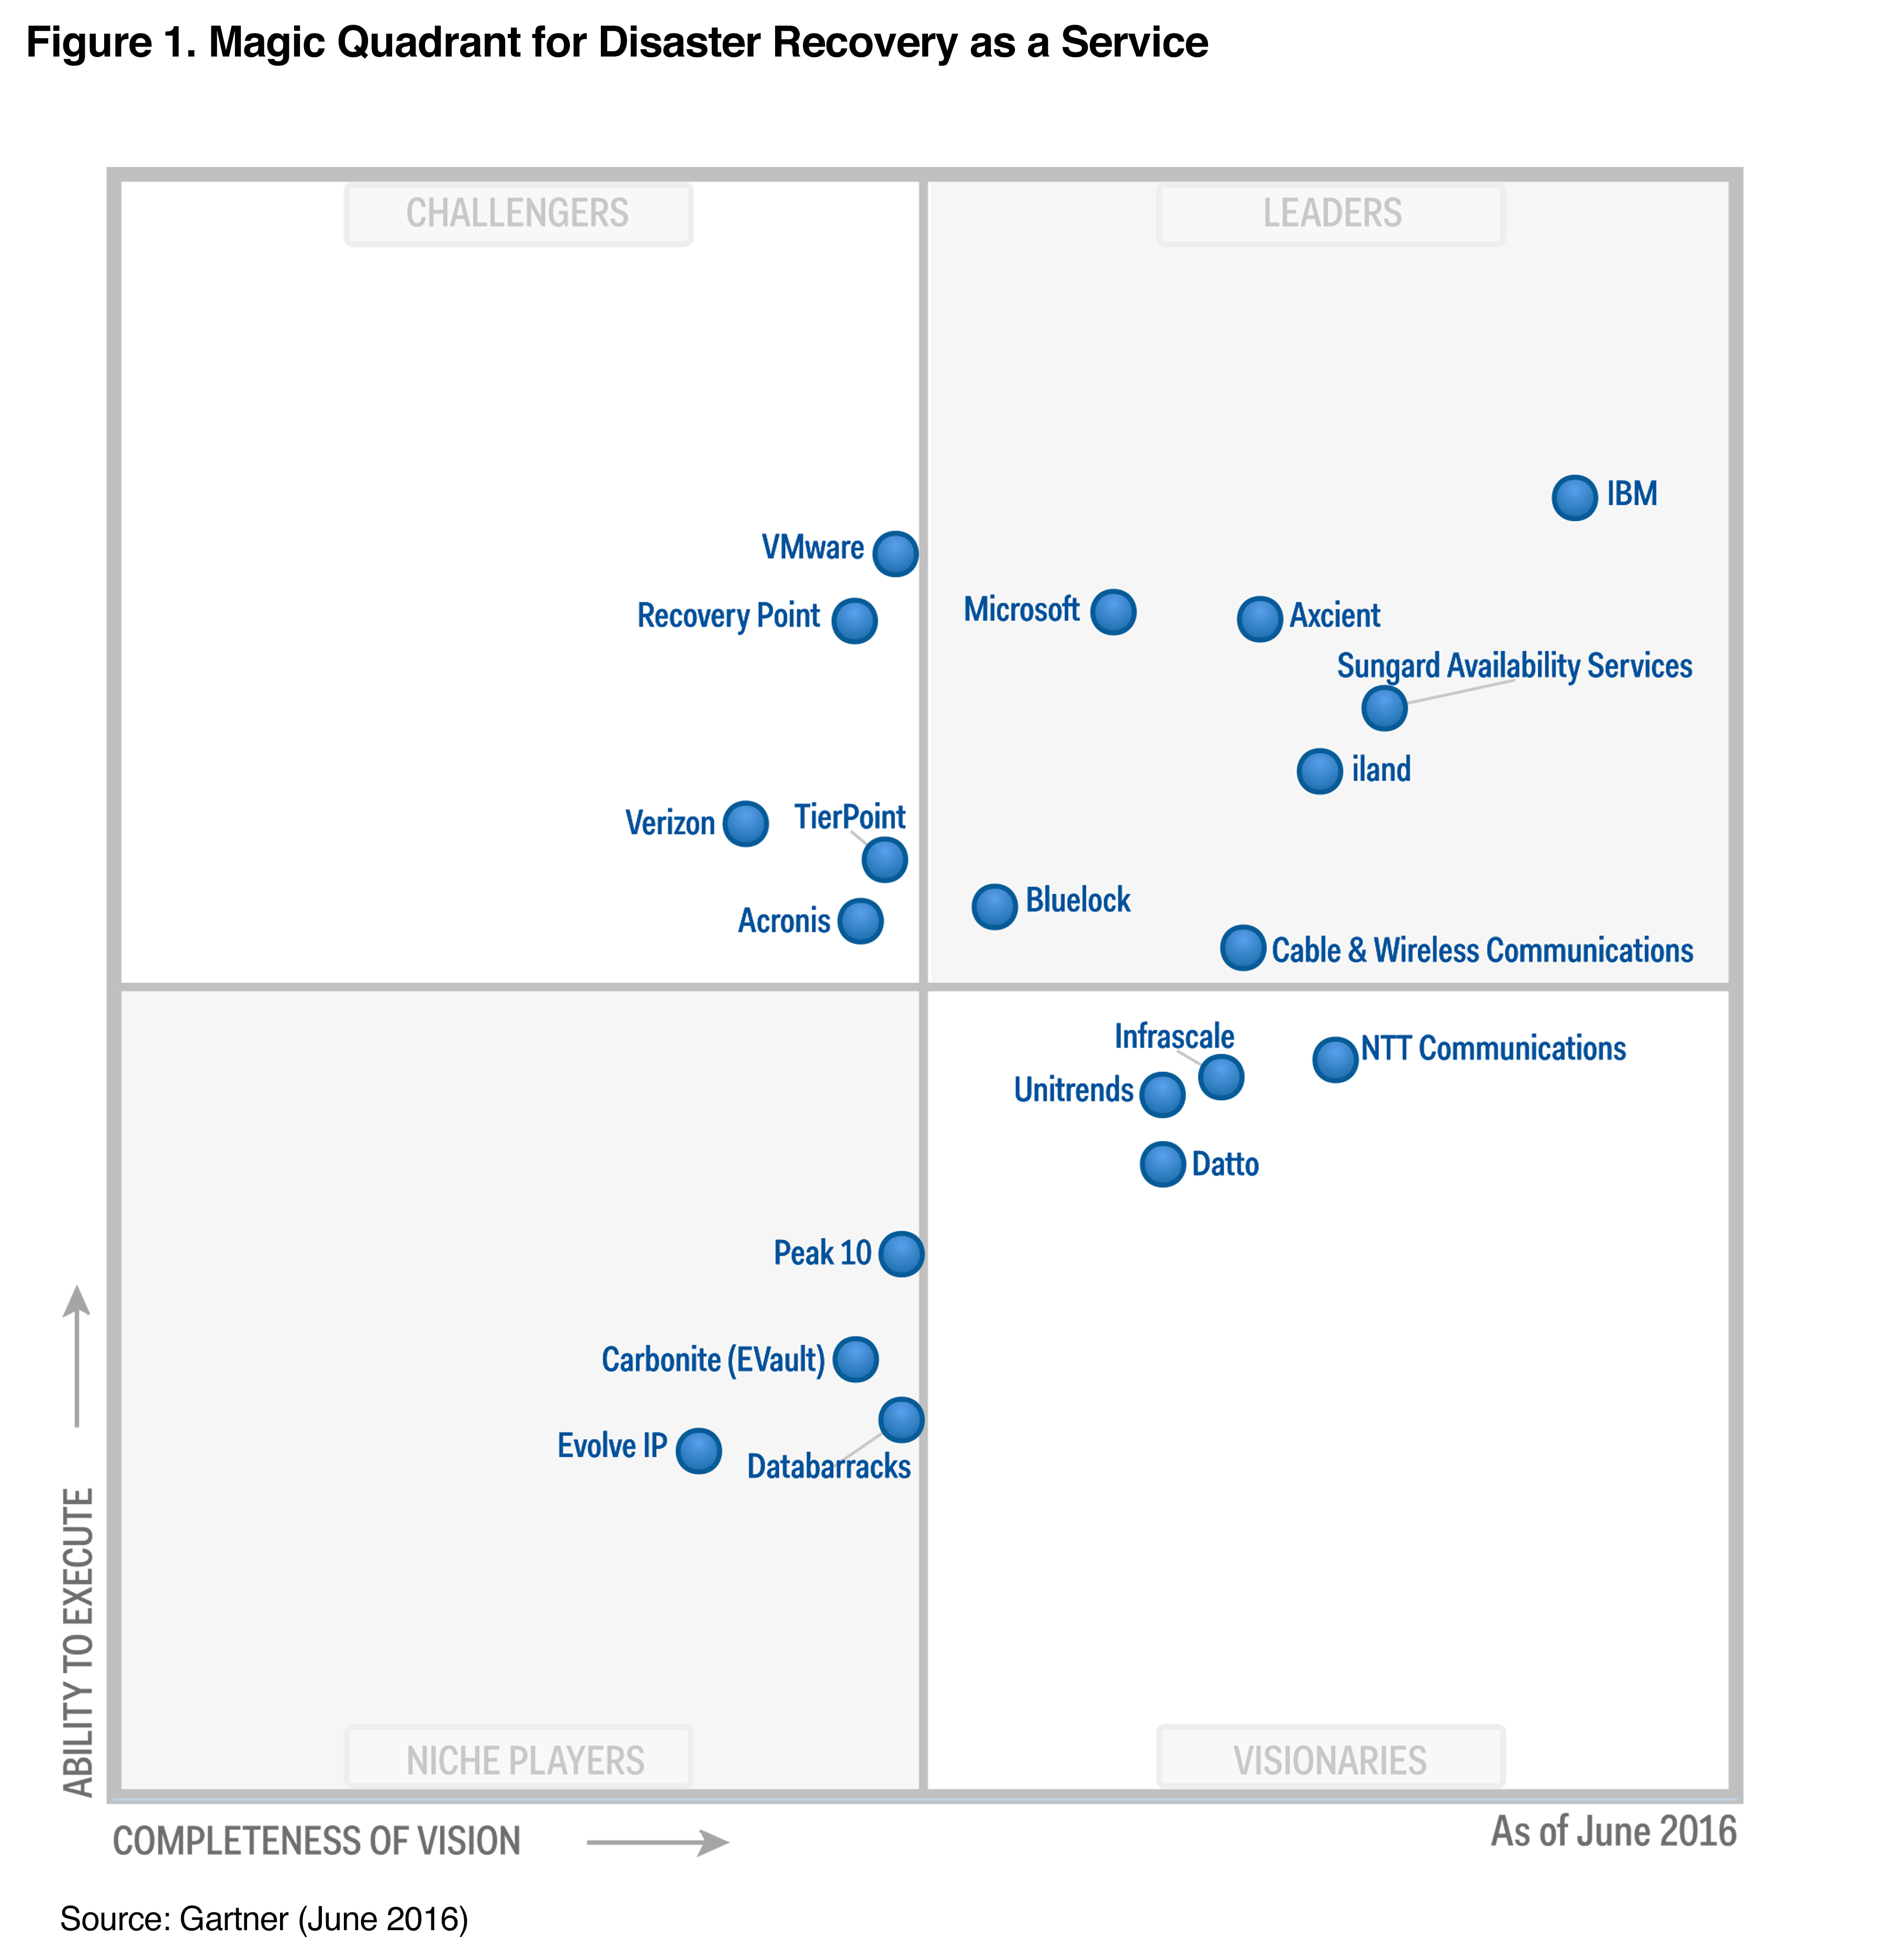 Databarracks in the Magic Quadrant